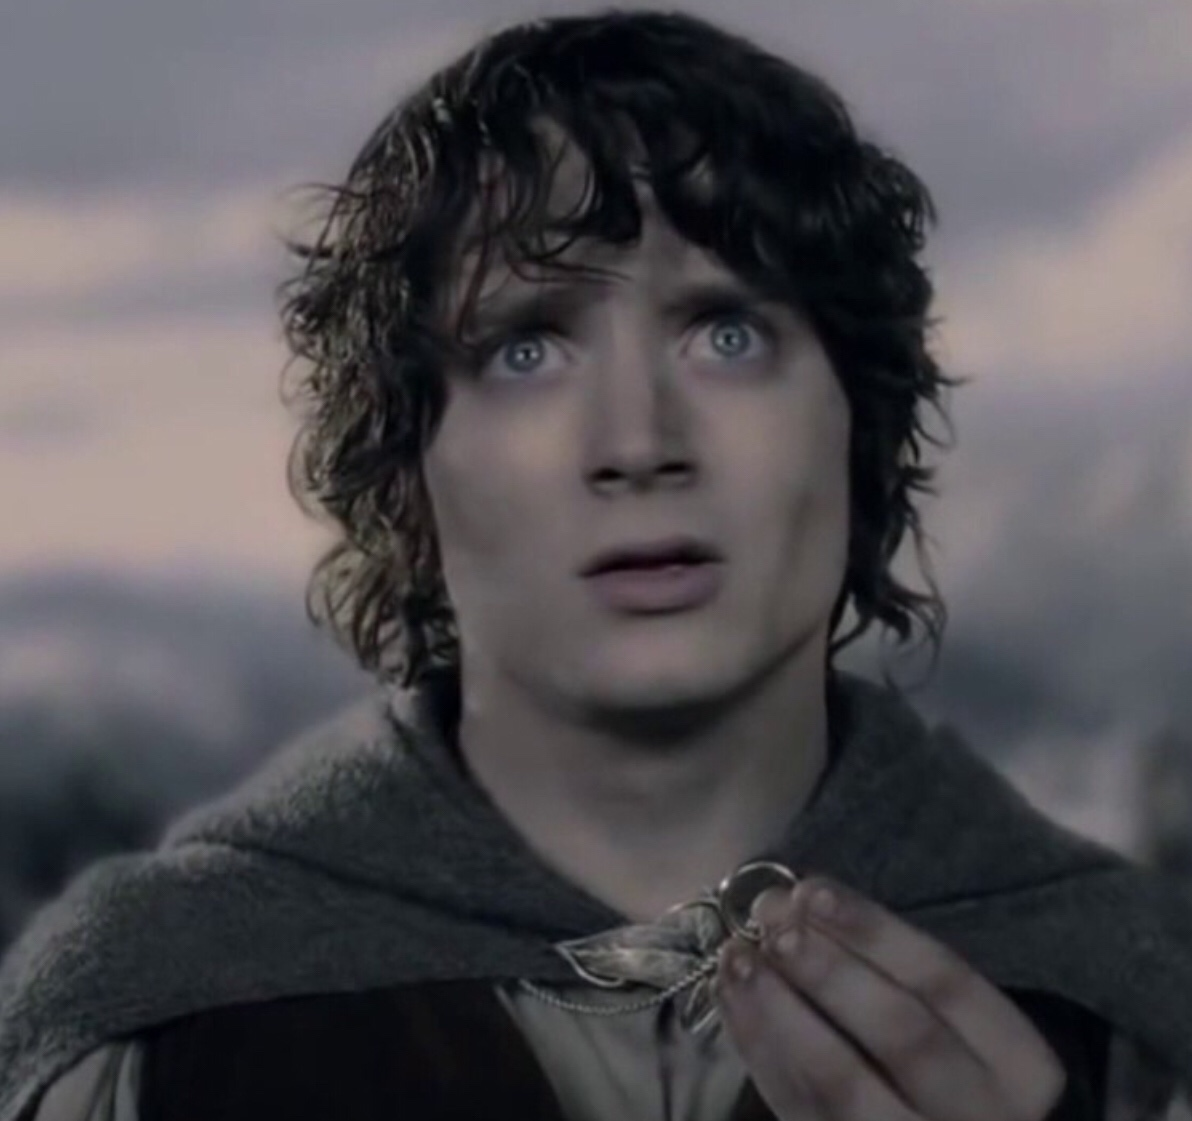 Frodo and his quest to destroy the ring